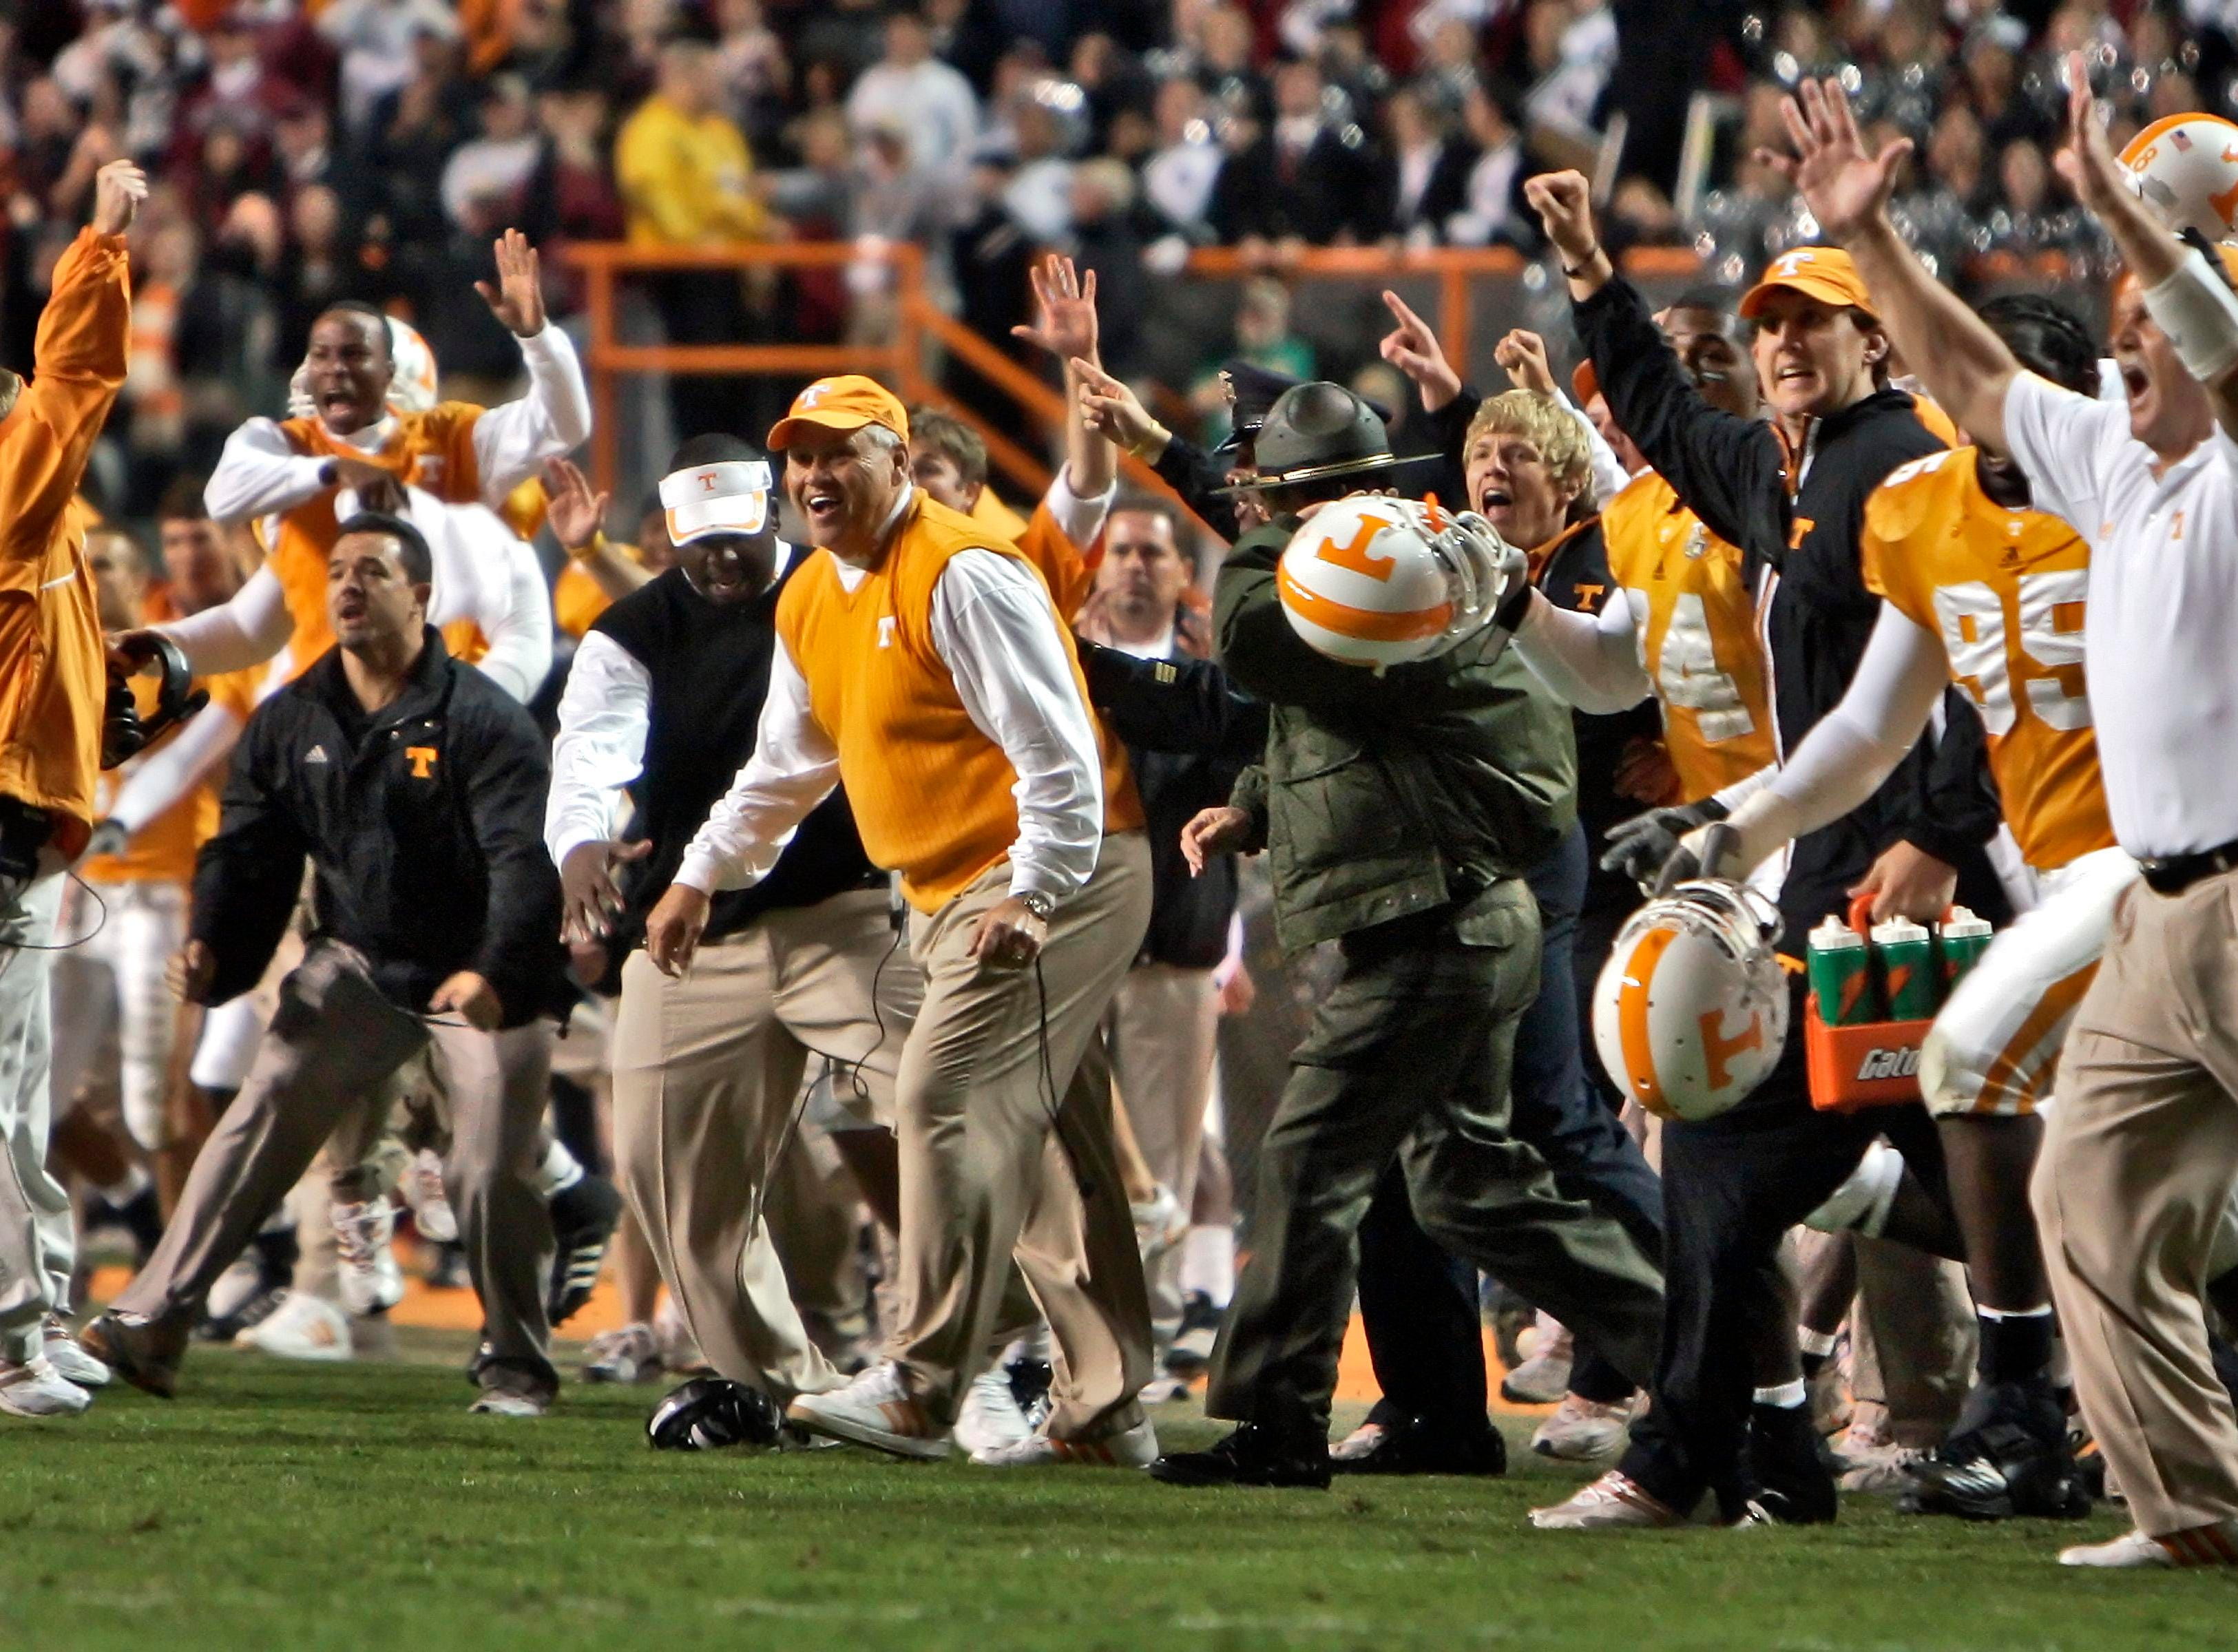 The Tennessee bench including head coach Phillip Fulmer, orange vest, celebrates after a 27-24 overtime win over South Carolina in a college football game Saturday, Oct. 27, 2007 in Knoxville, Tenn.